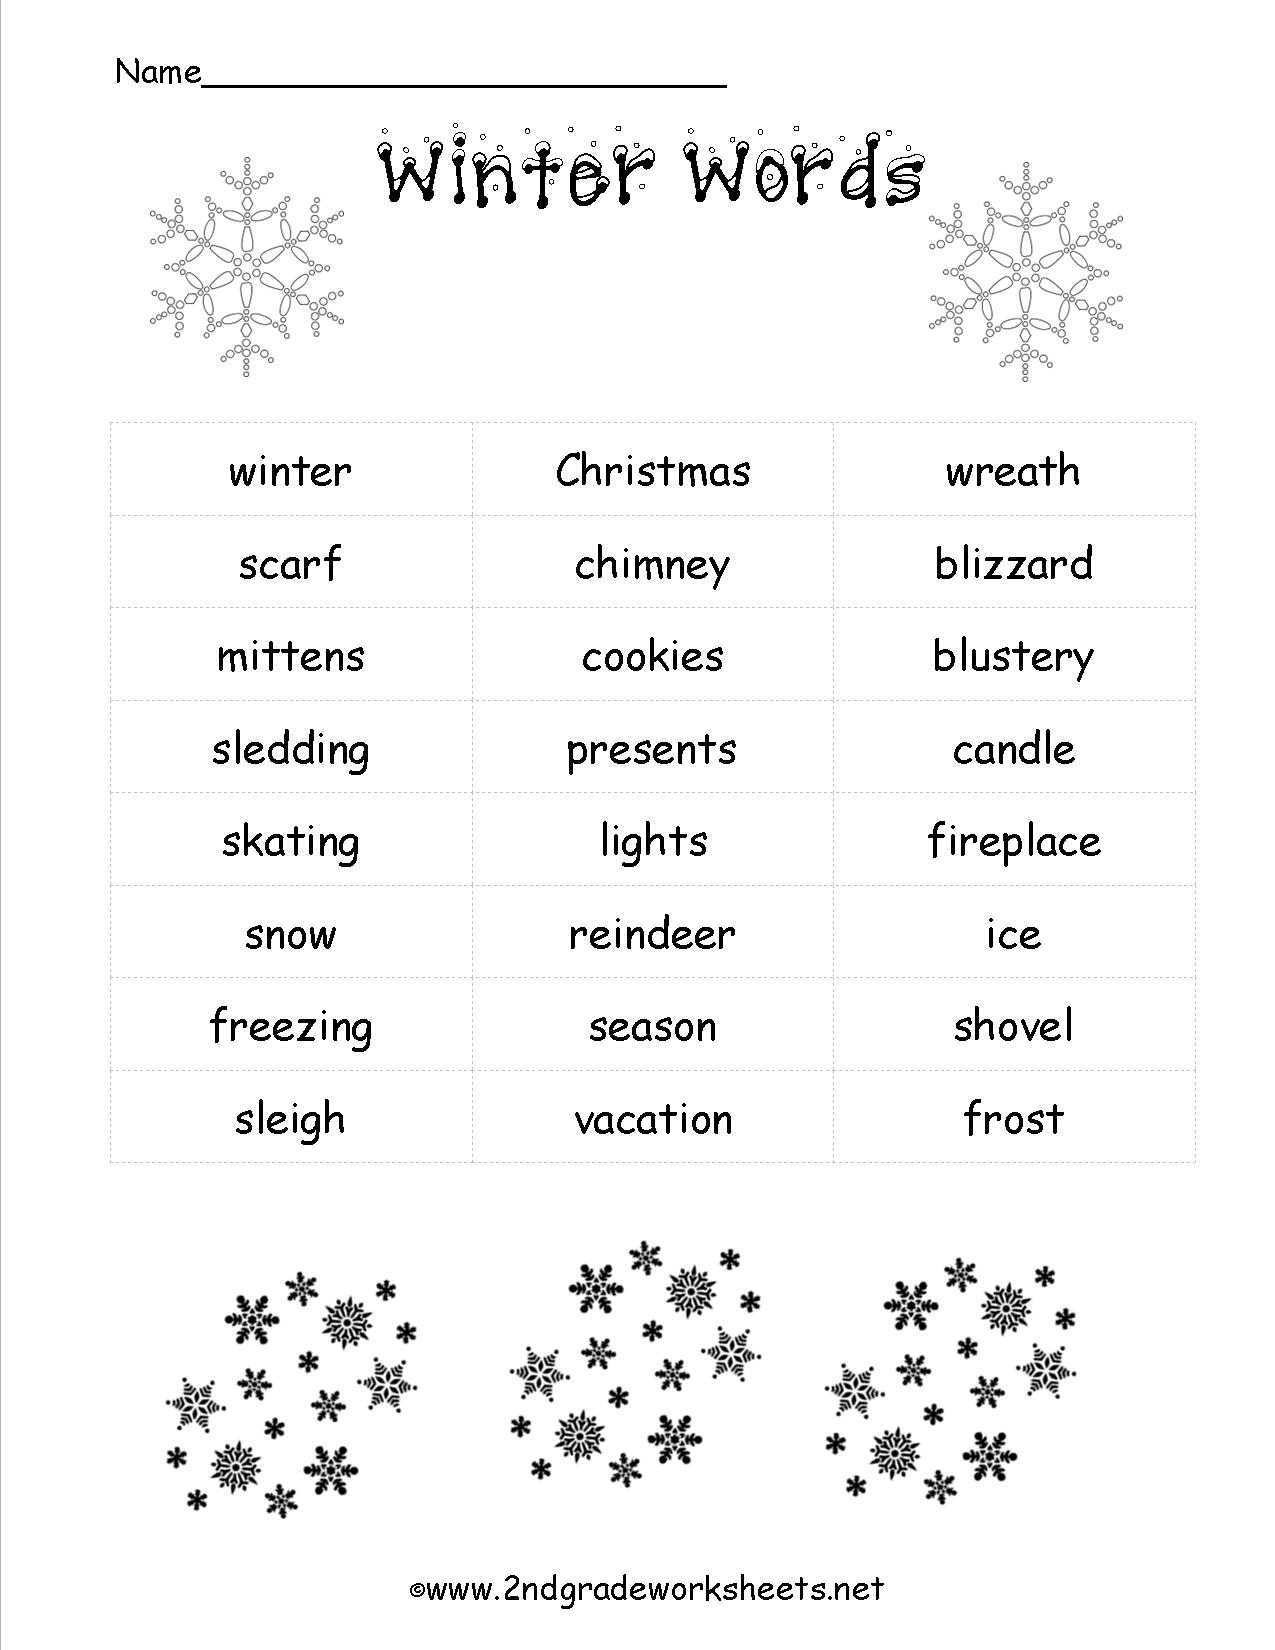 Weather Worksheet New 16 Winter Weather Worksheets First